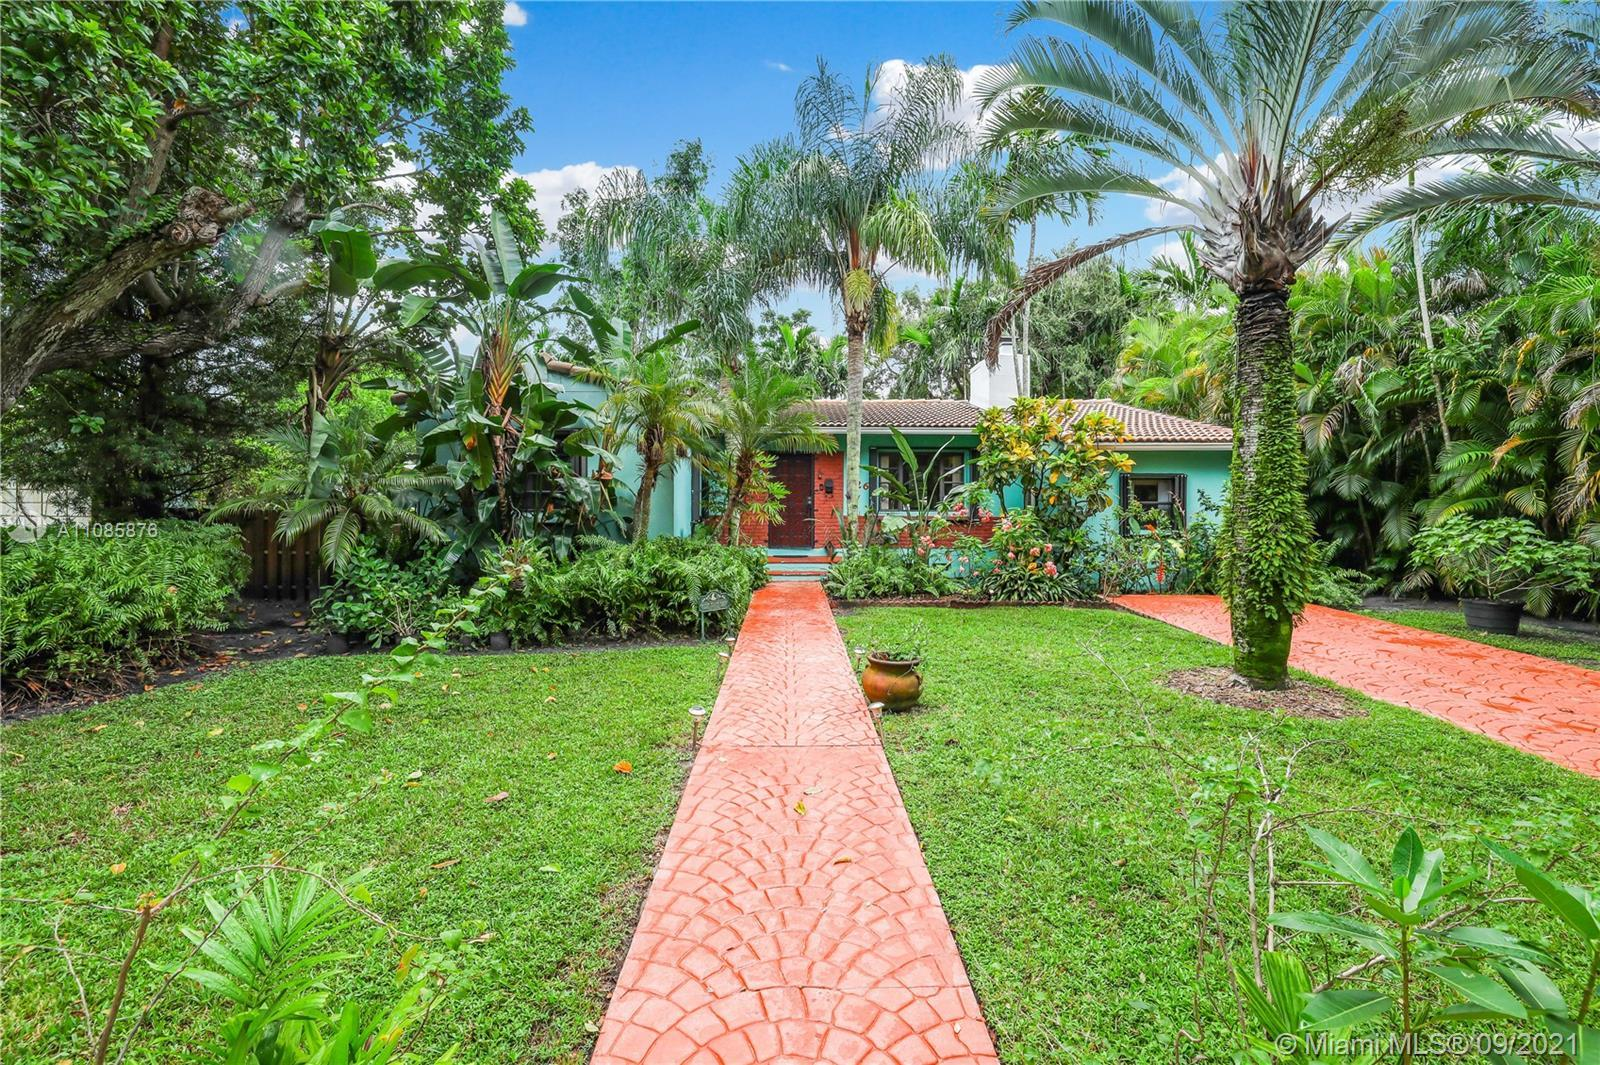 This charming 2 bedrooms 2 bathrooms plus Den home is located in the neighborhood of Miami Shores. T